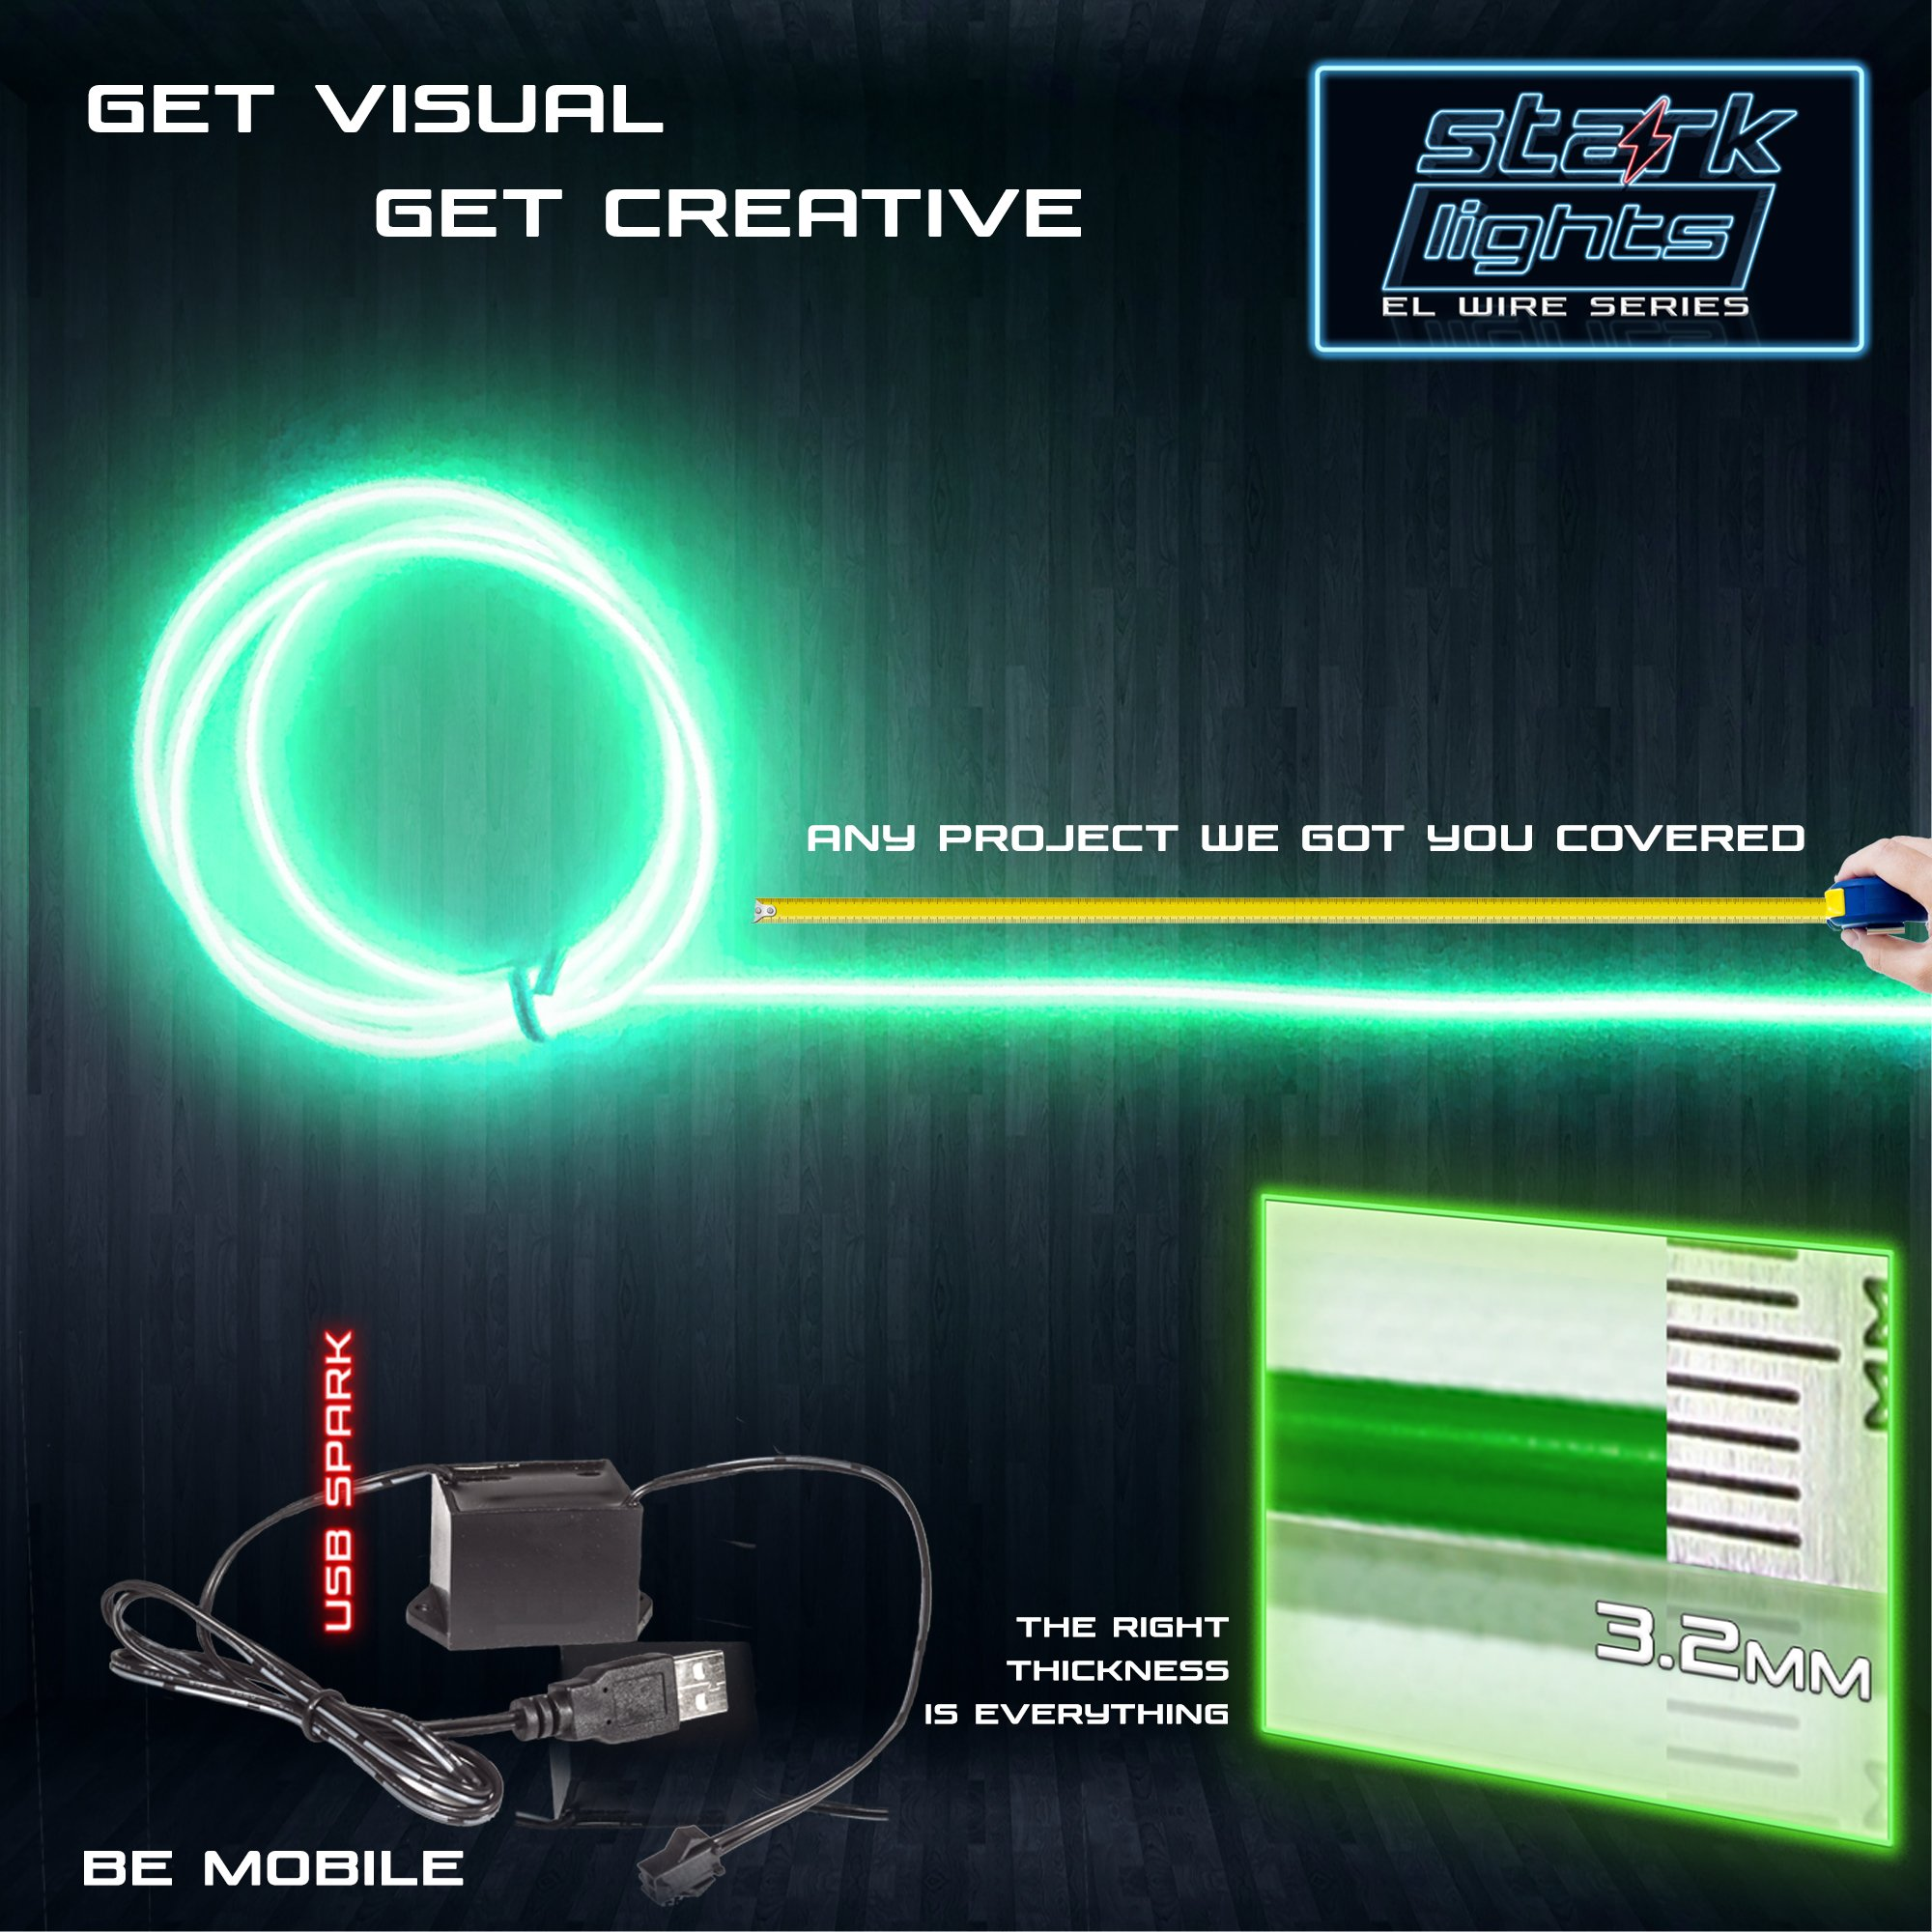 5m/16.4ft Large 3.2 mm Thick - Green Neon LED Light